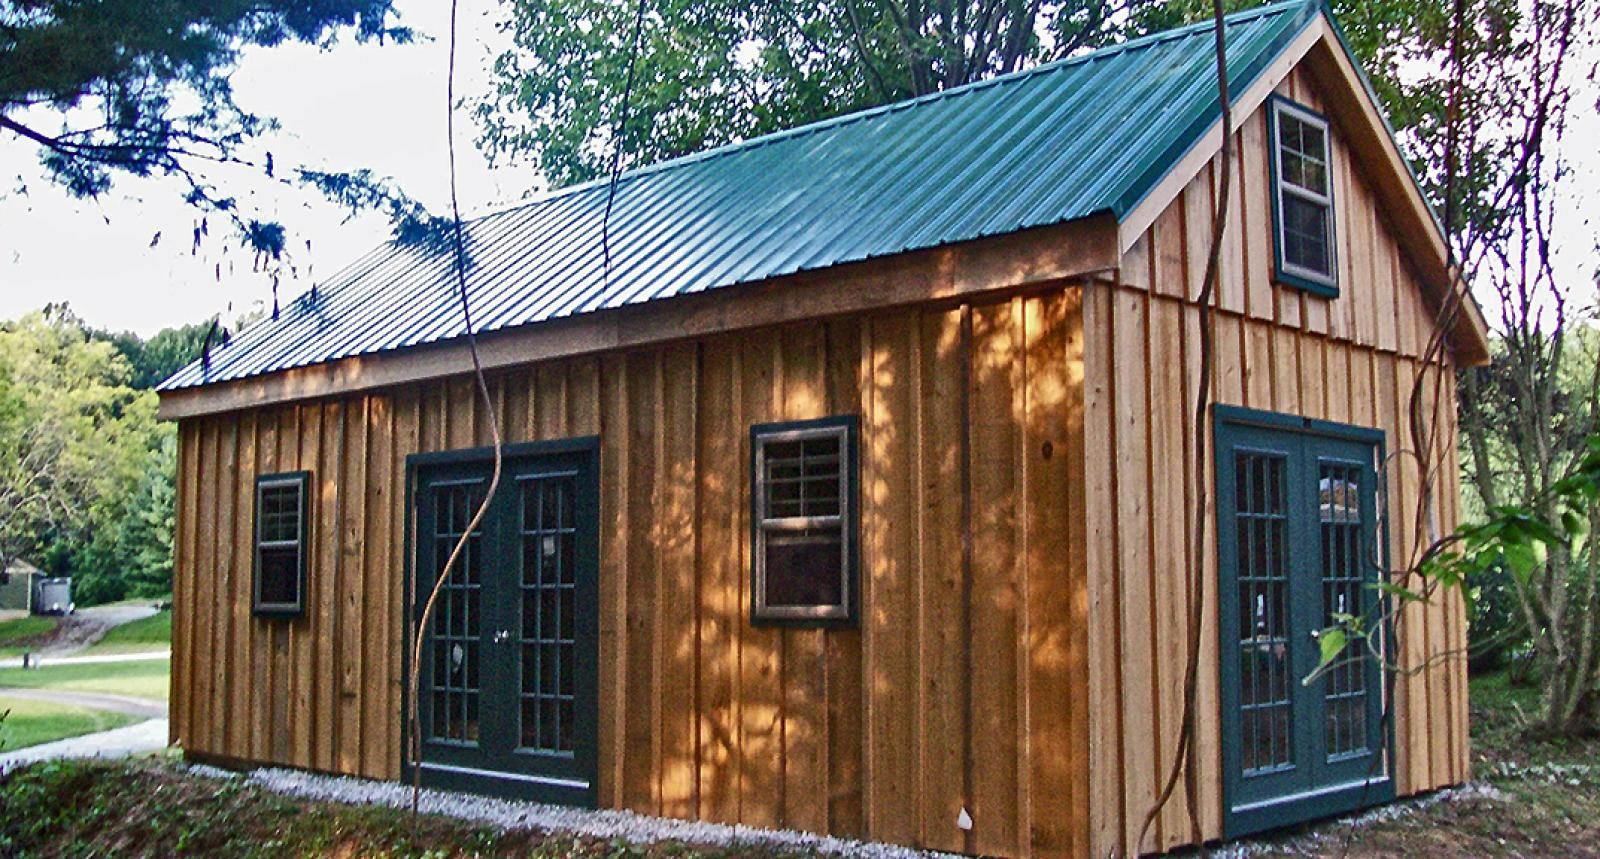 Pine Board Batten Garages Horizon Structures Cabin 1 Colors But With White Windows Ok Wooden Garage Rustic Shed Shed